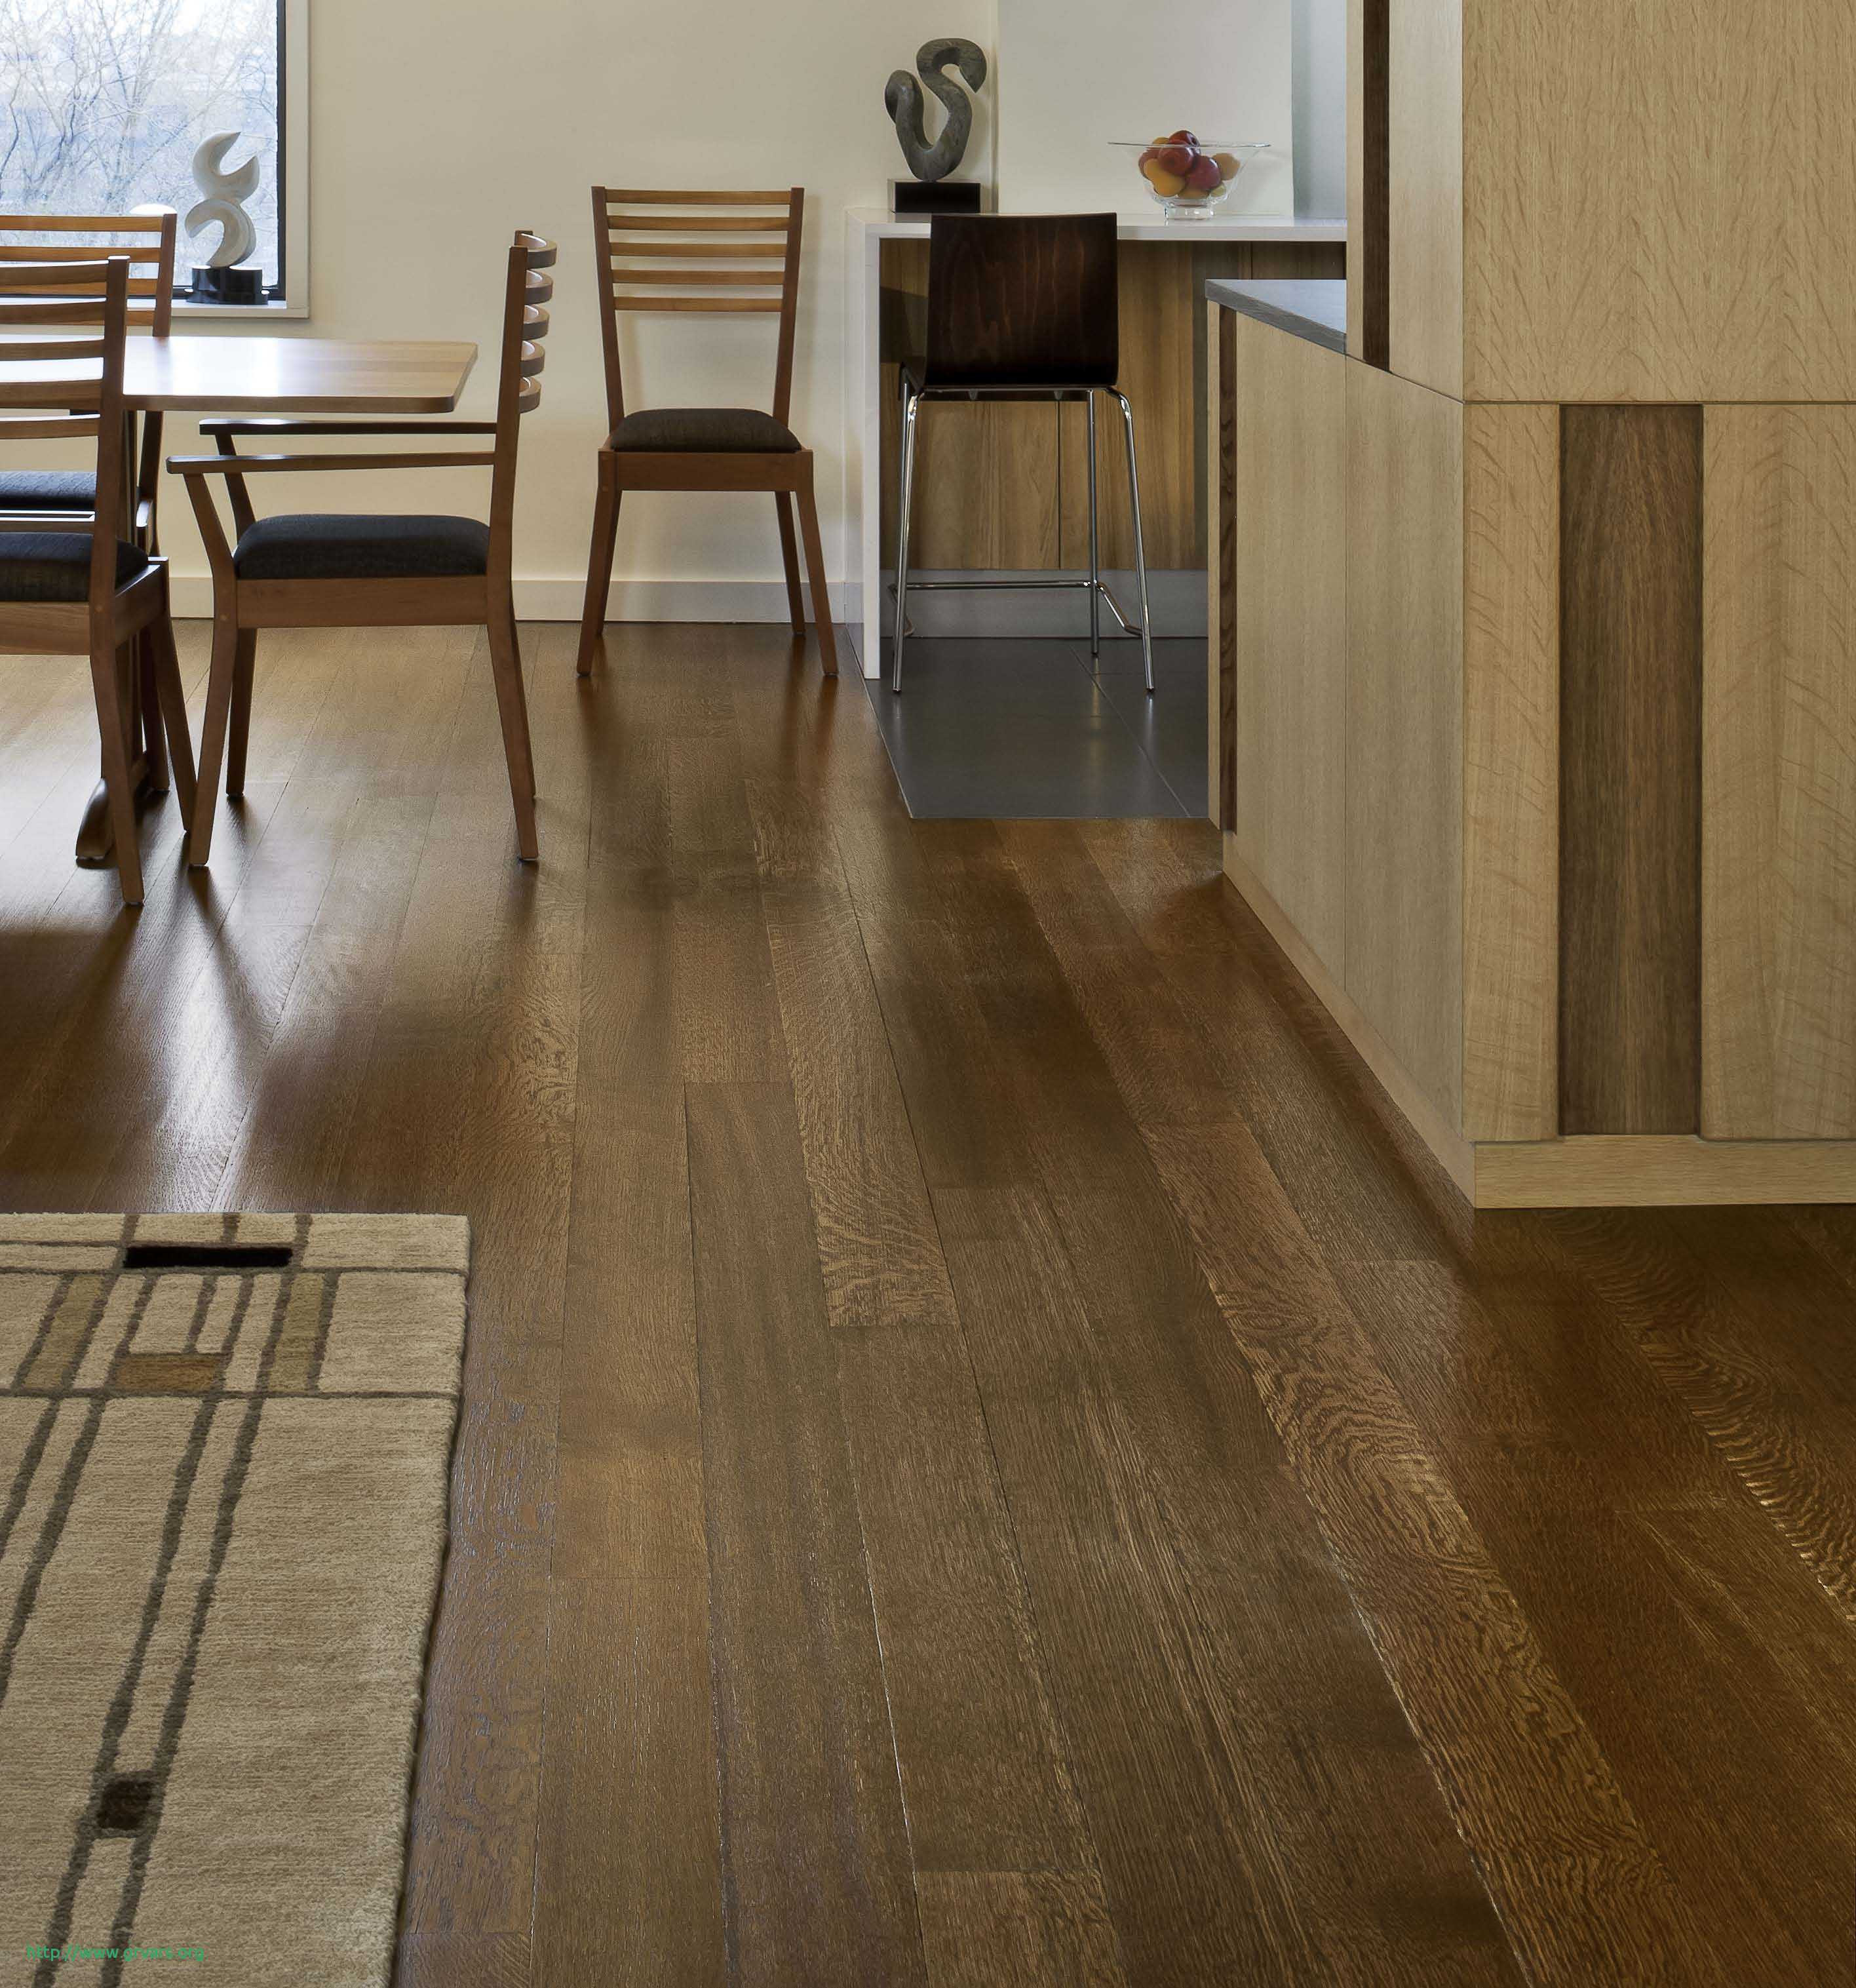 hardwood floor refinishing toronto reviews of 21 beau cheapest hardwood flooring in toronto ideas blog regarding cheapest hardwood flooring in toronto impressionnant fabulous discount hardwood flooring 0 floor brampton 25 toronto